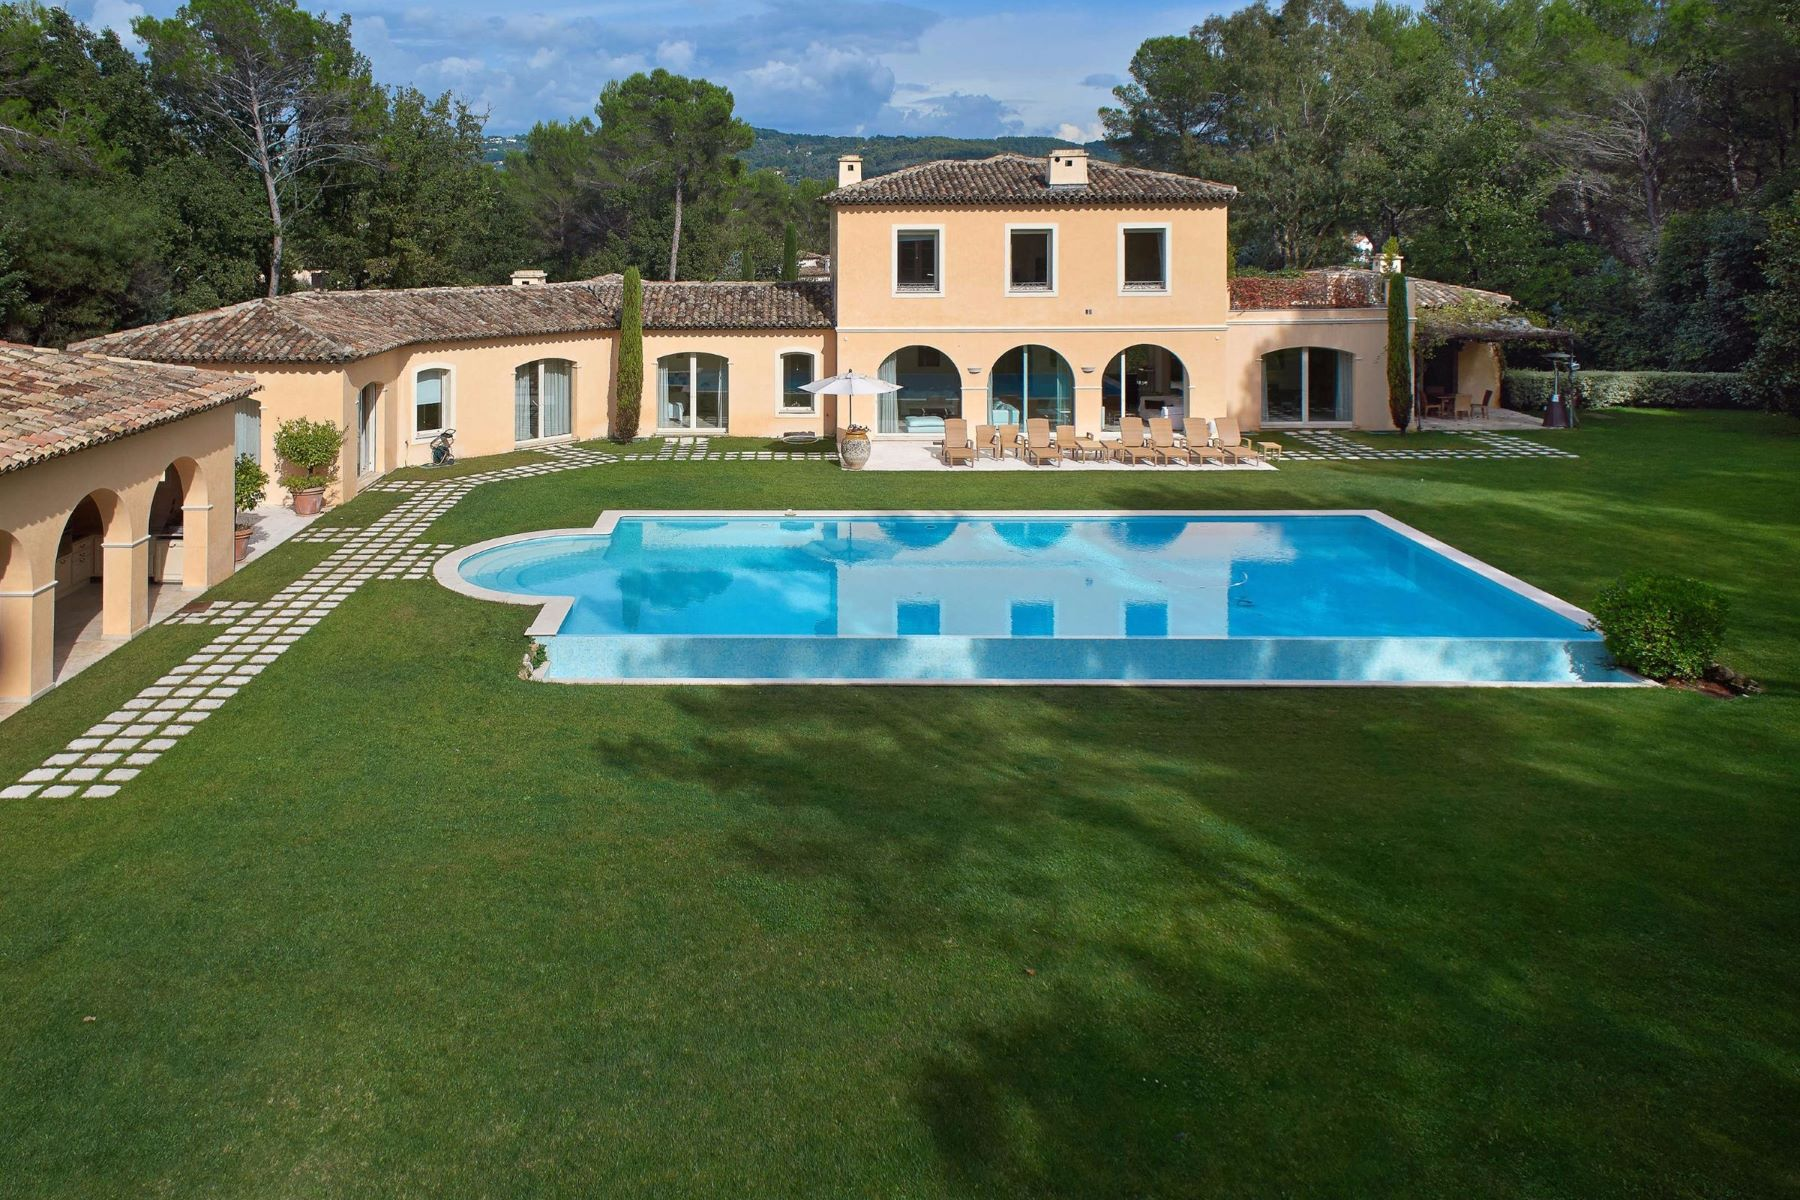 Single Family Home for Sale at Luxury 'bastide' in a gated domain of Mougins Mougins, Provence-Alpes-Cote D'Azur 06250 France